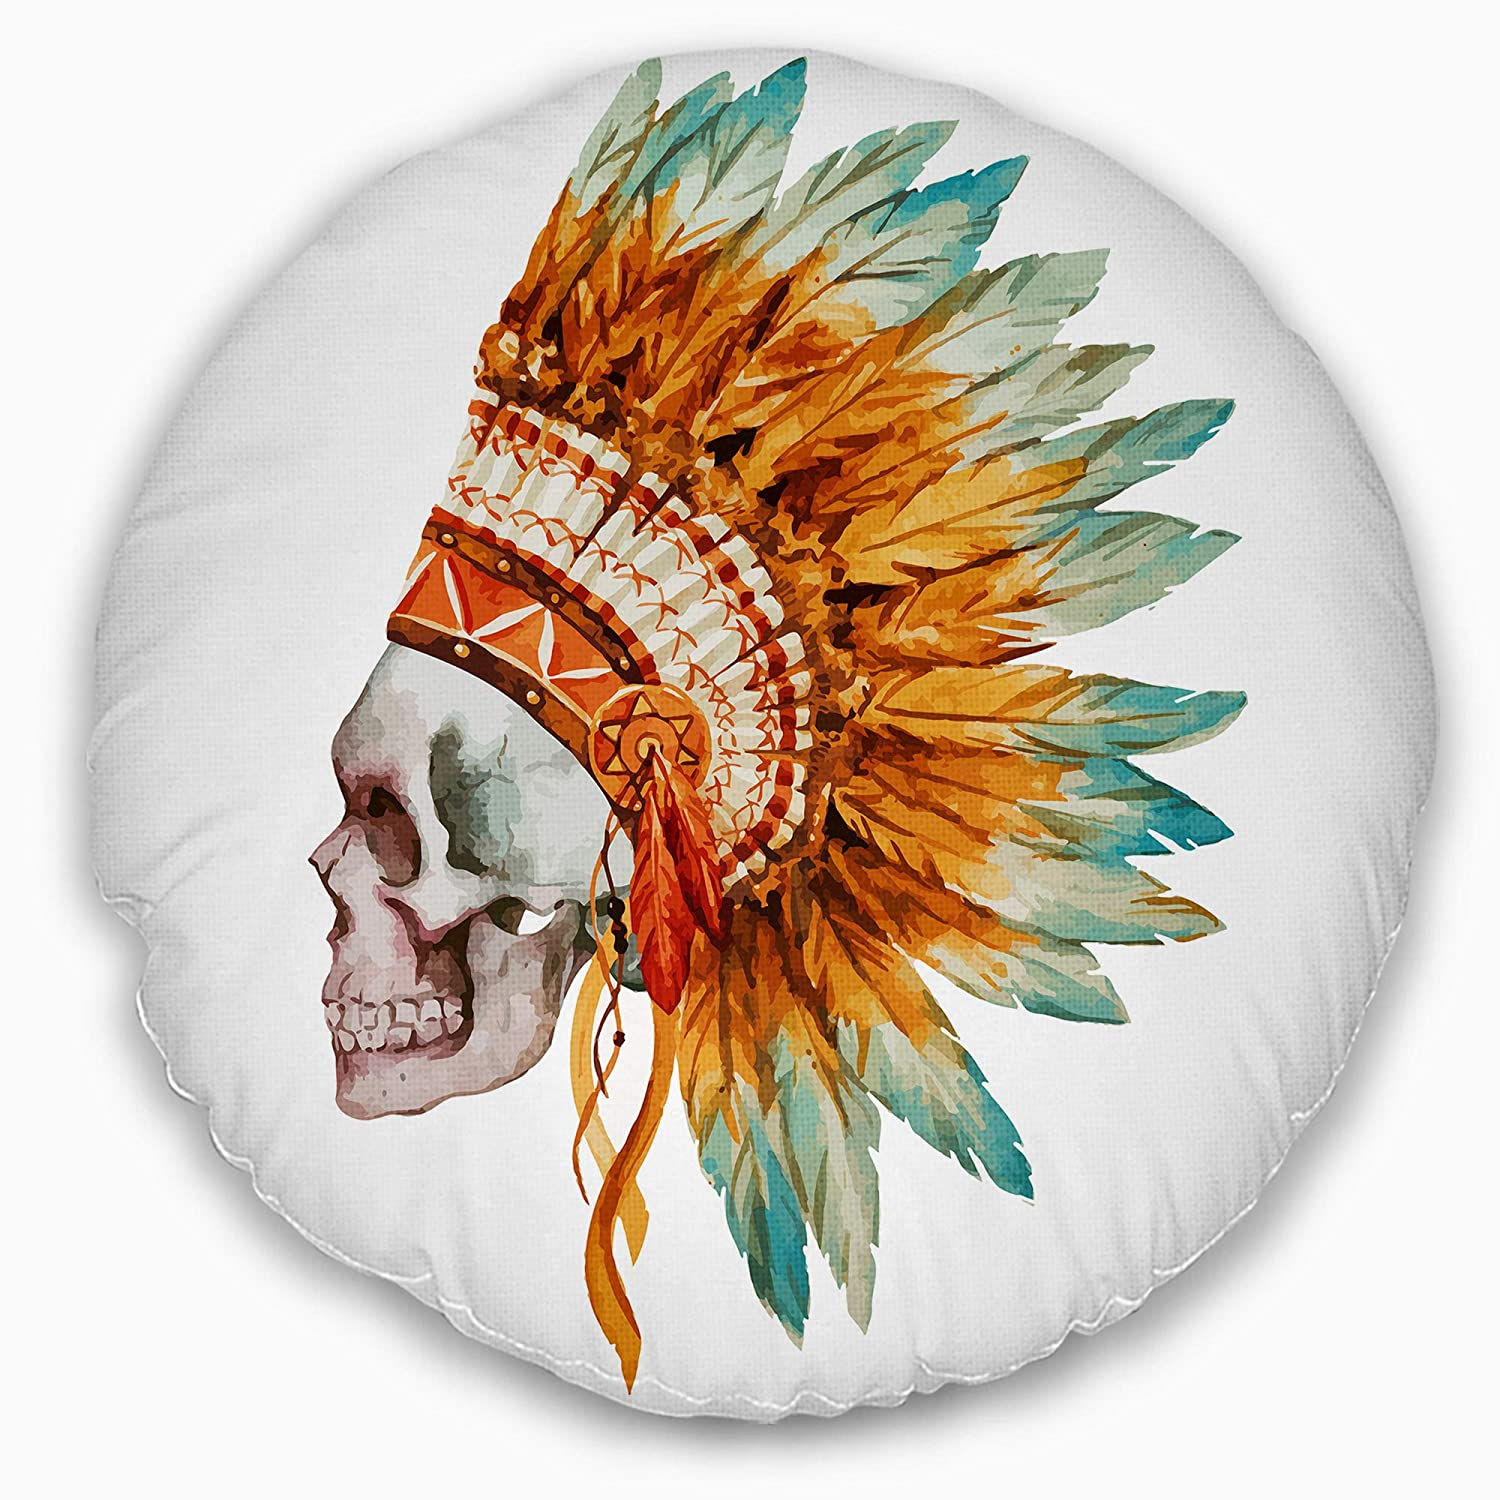 Designart CU6636-16-16-C Skull with Feathers Abstract Round Cushion Cover for Living Room Insert Printed On Both Side Sofa Throw Pillow 16